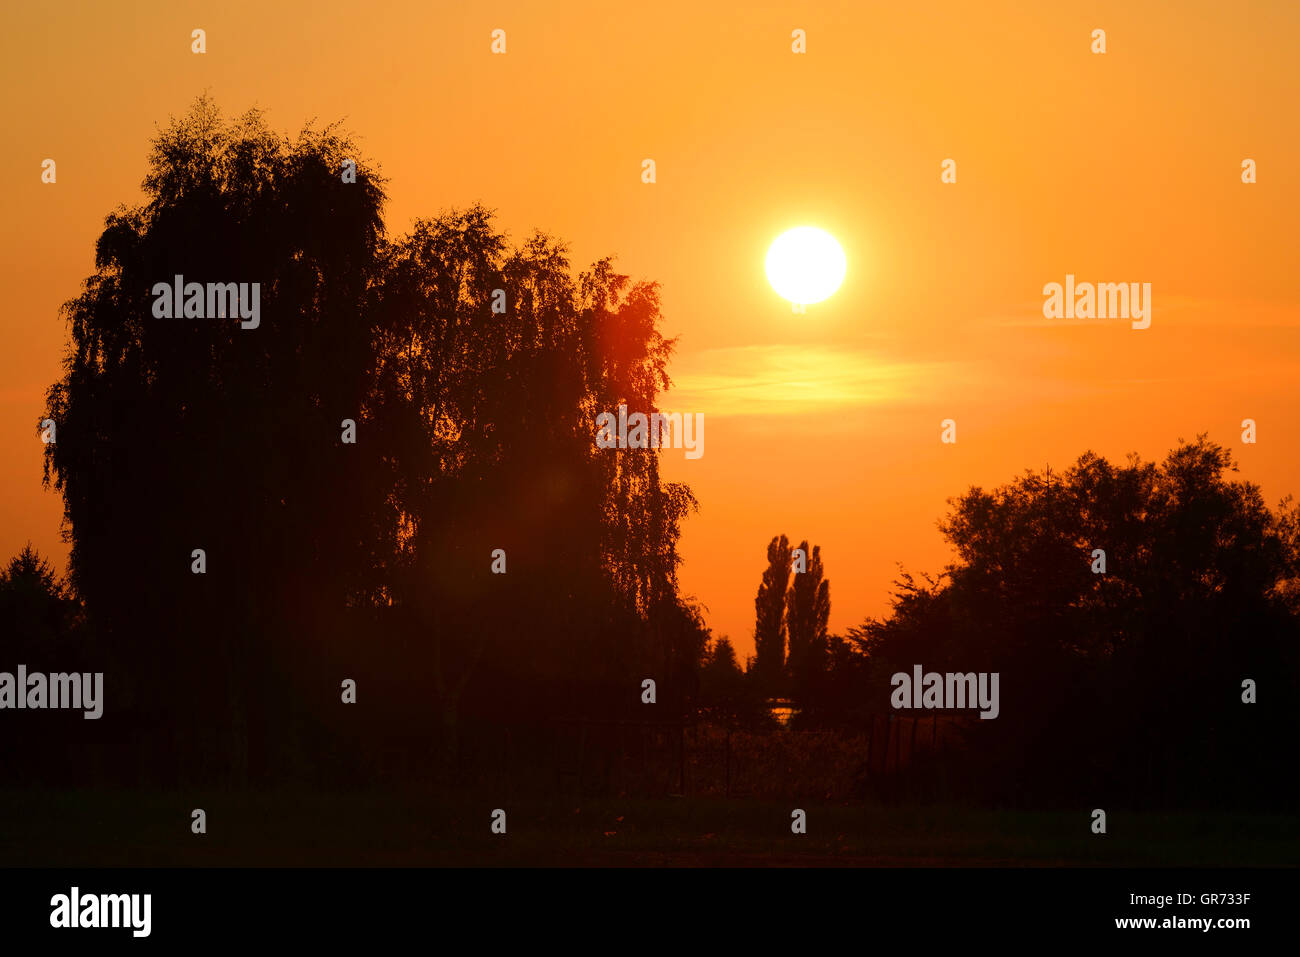 Sunset And Tree Silhouette In Hamburg, Germany - Stock Image